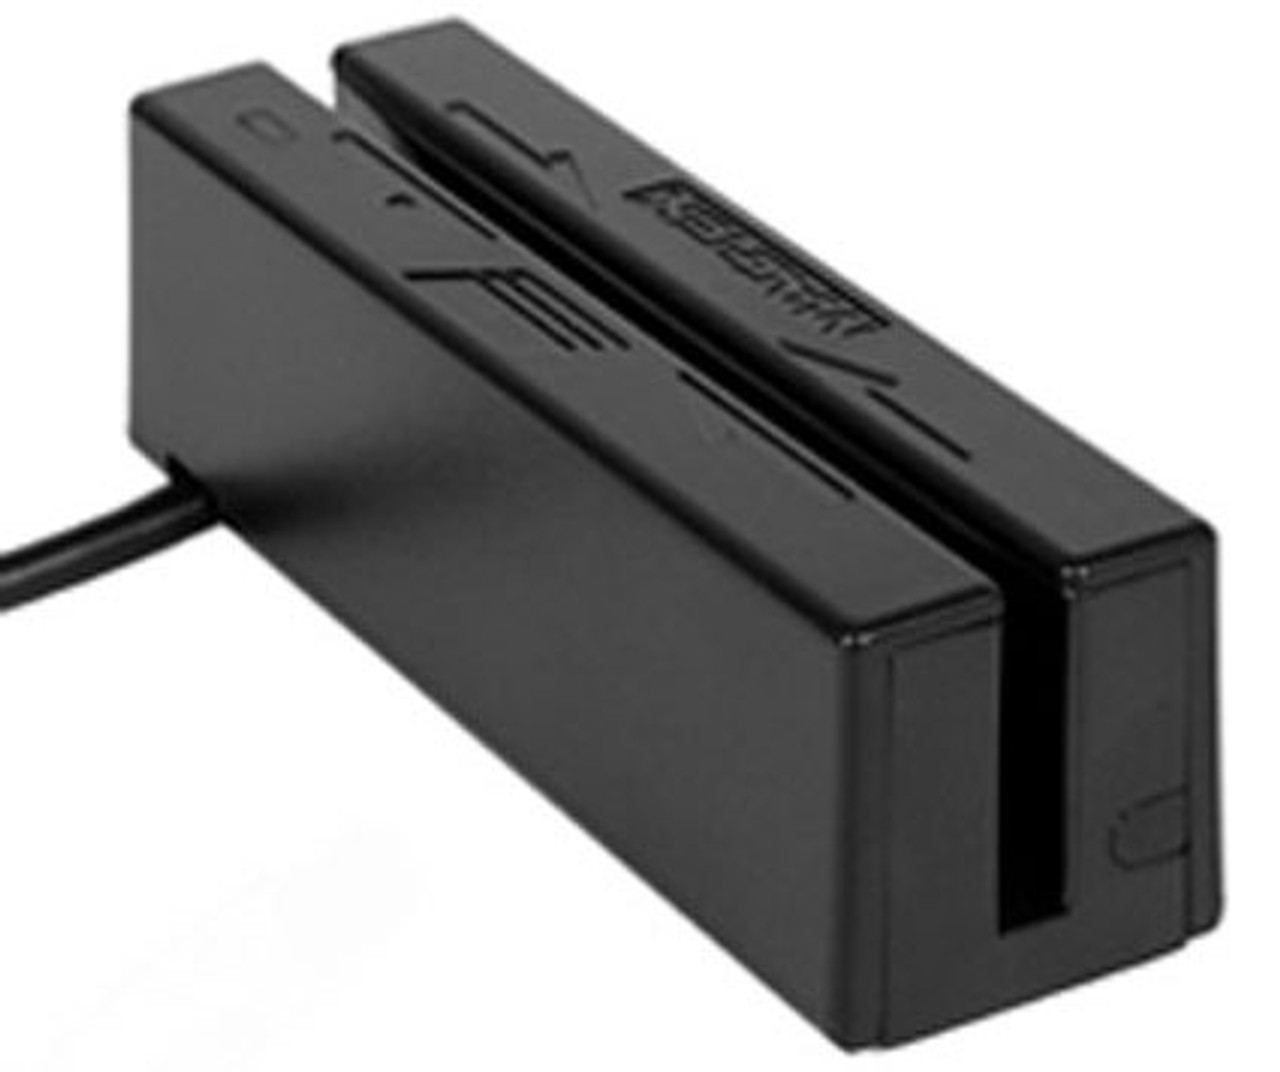 Magtek USB Card Reader